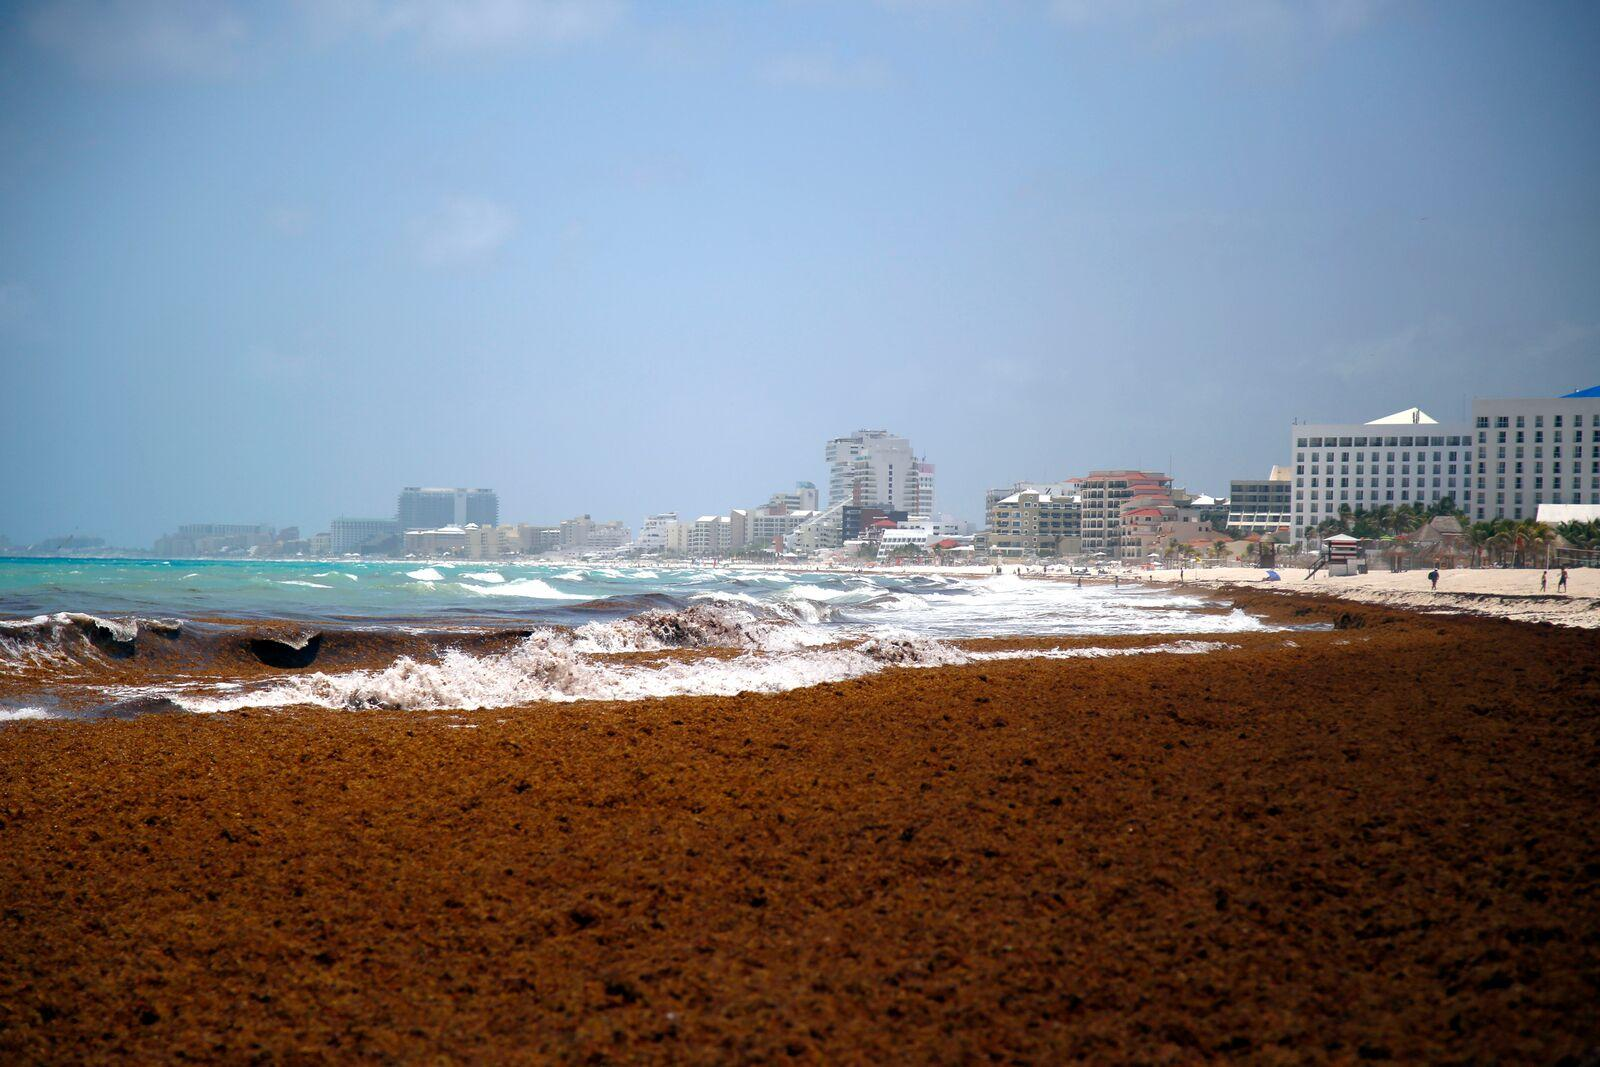 Smelly seaweed assaults, blankets Caribbean beaches | WLRN